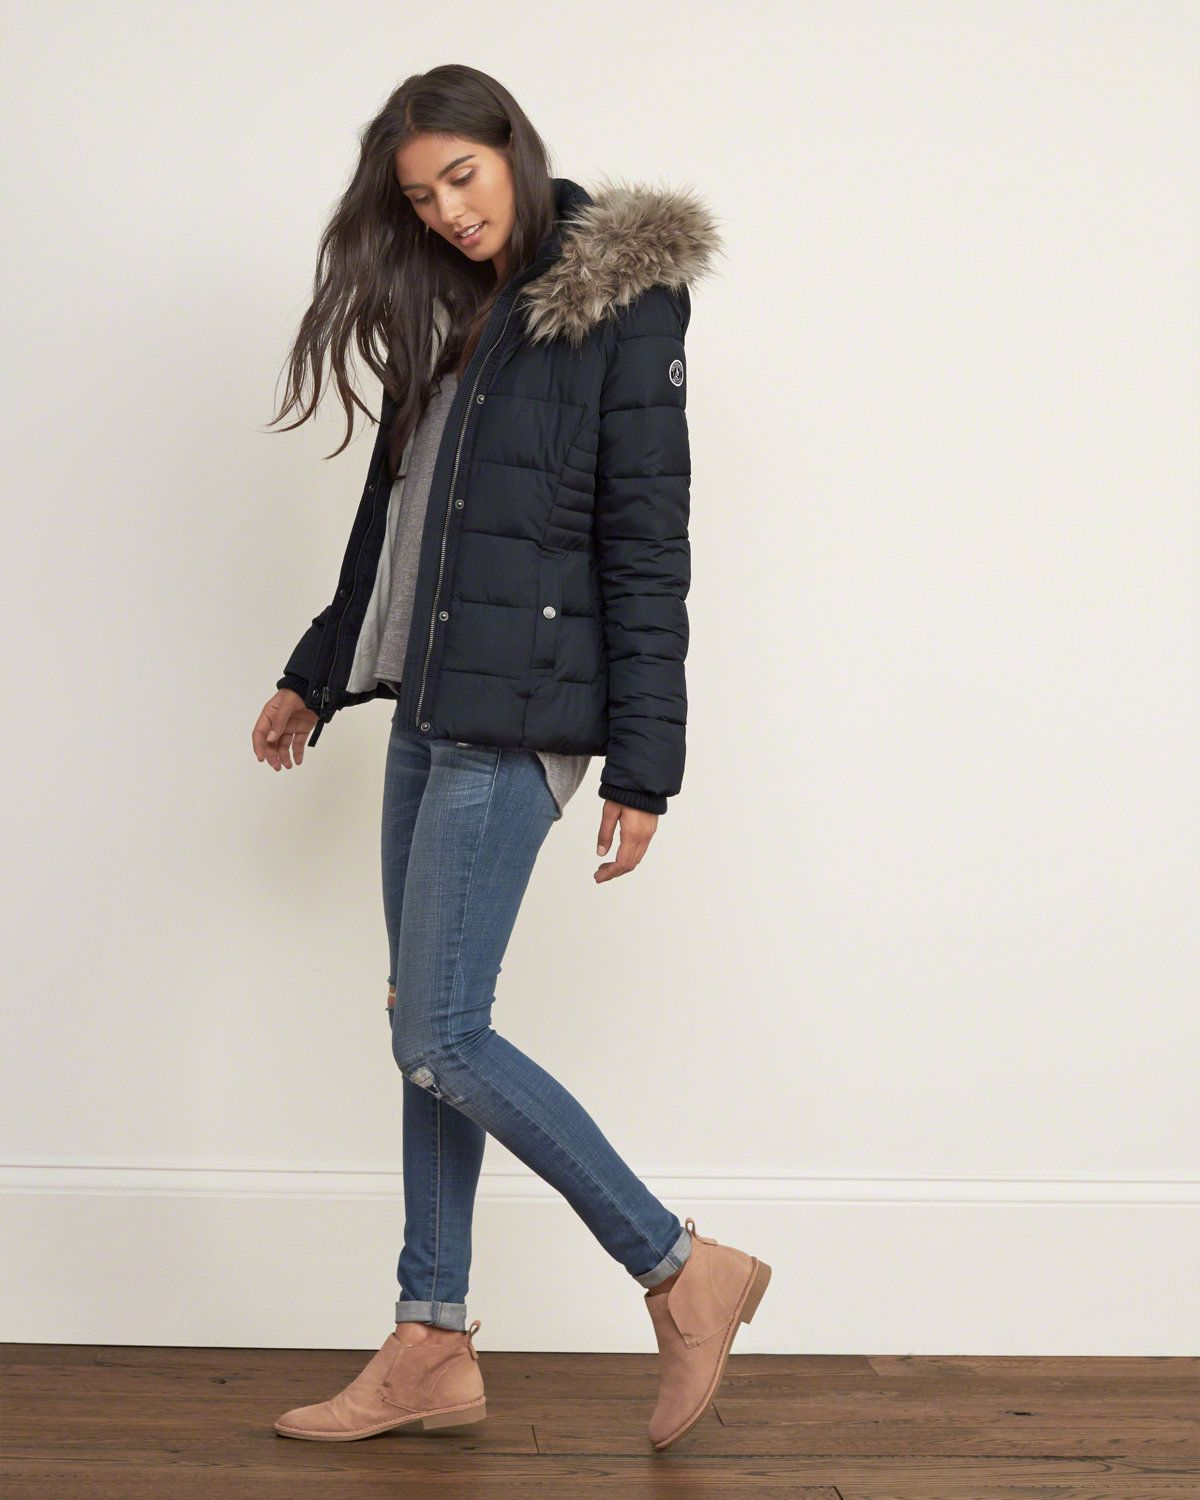 A F Premium Puffer Jacket Coats For Women Outerwear Women Outfits Invierno [ 1500 x 1200 Pixel ]